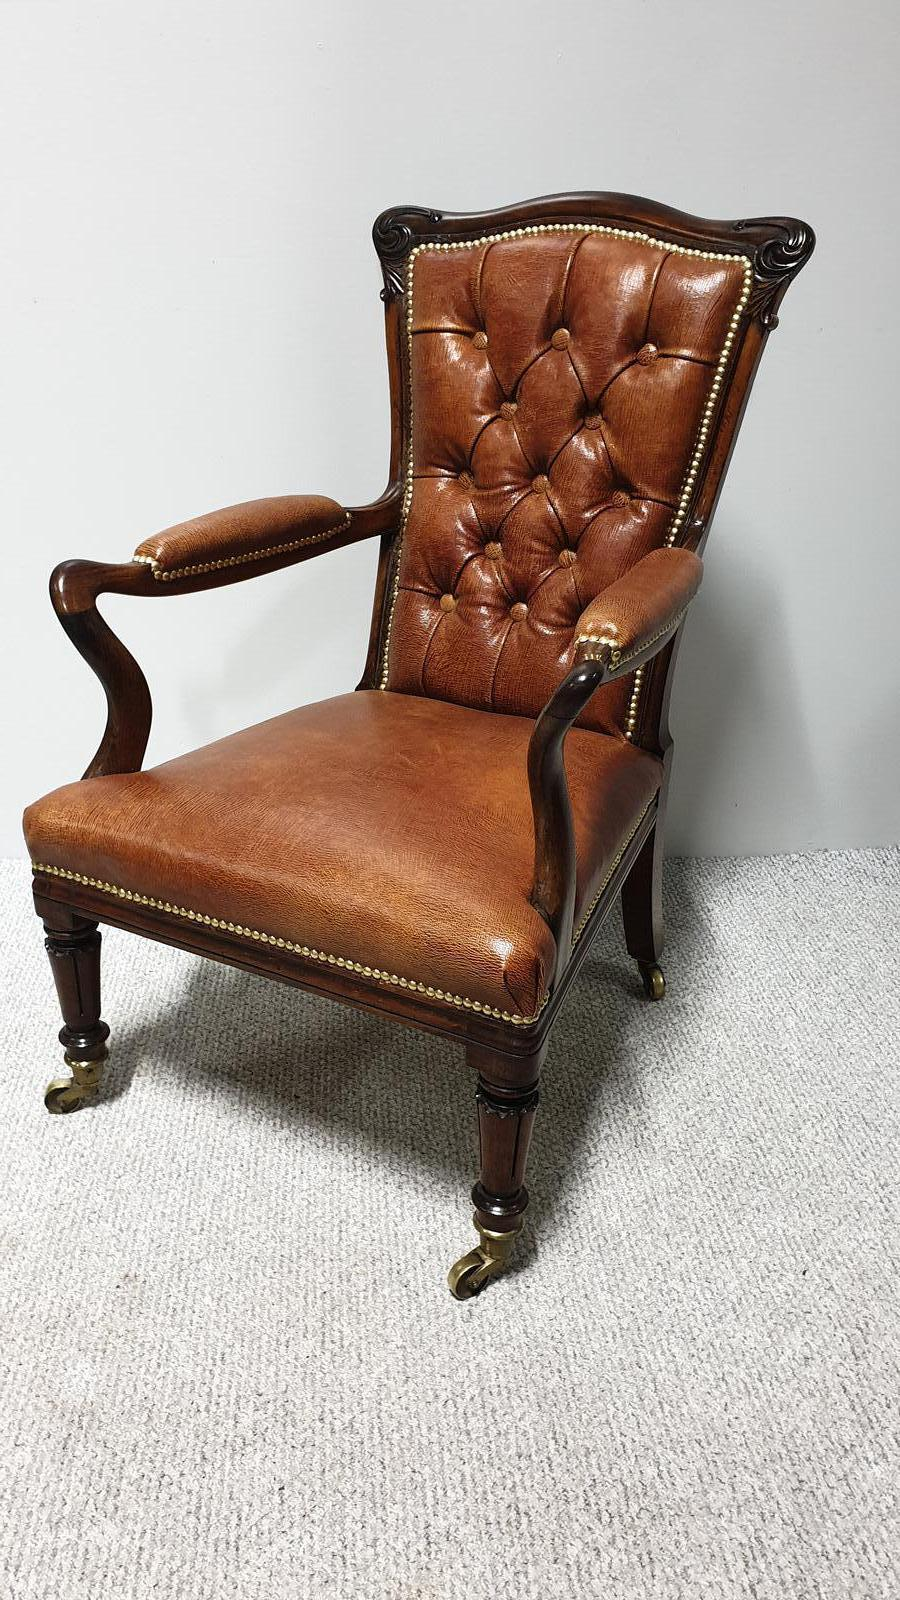 Outstanding Rosewood & Leather Library Chair (1 of 1)